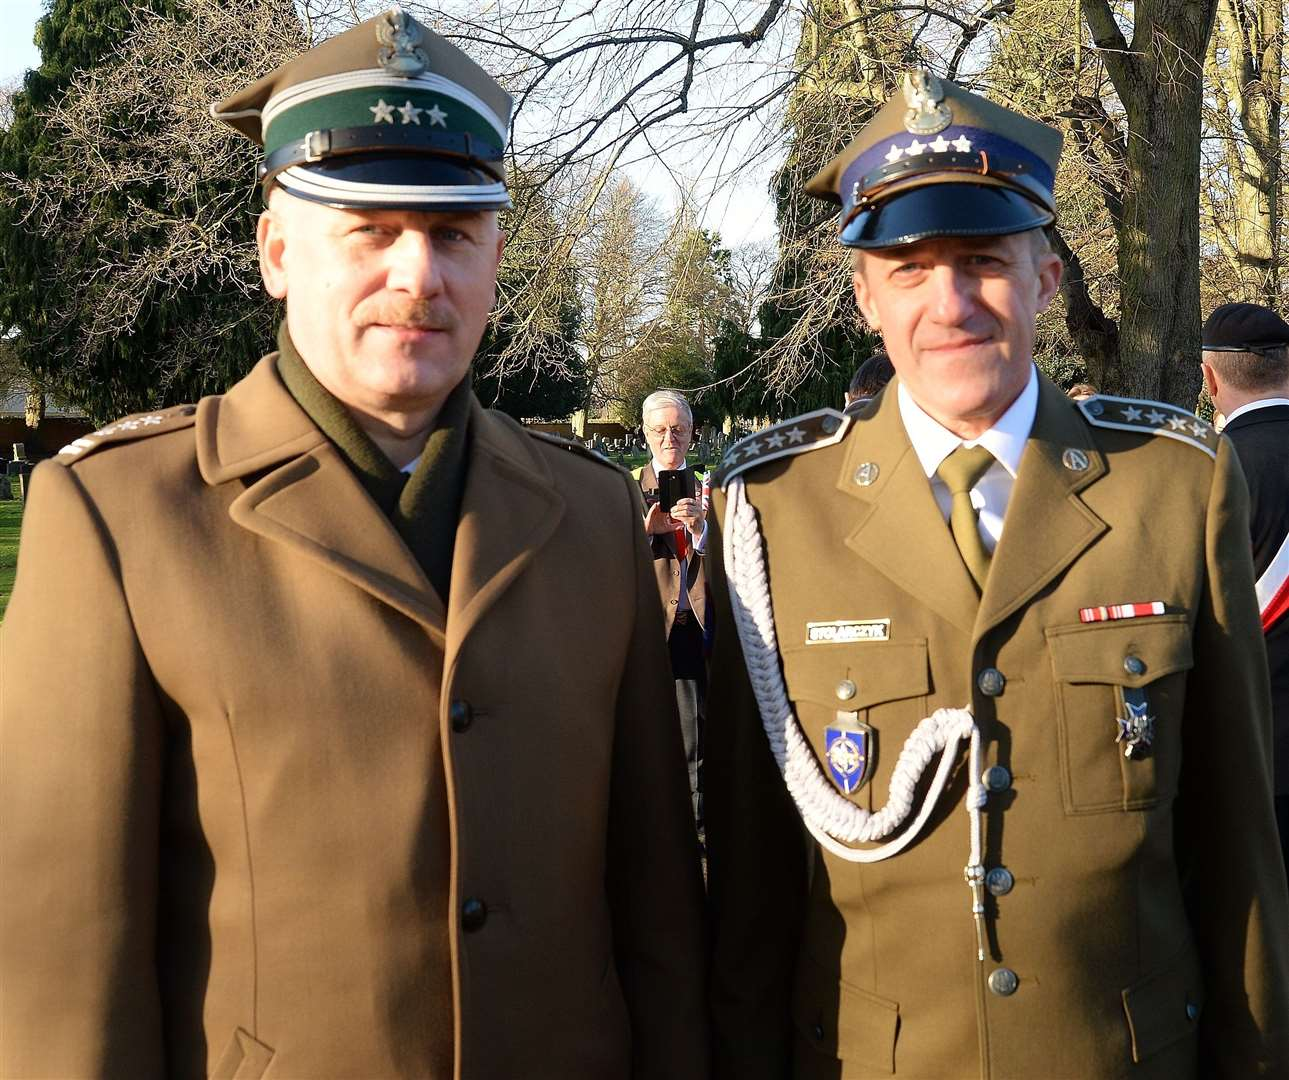 Polish Defence Attache Colonel Mieczysia Malec and his aide, Warrant Officer Chris Stolarczkk.(28526960)